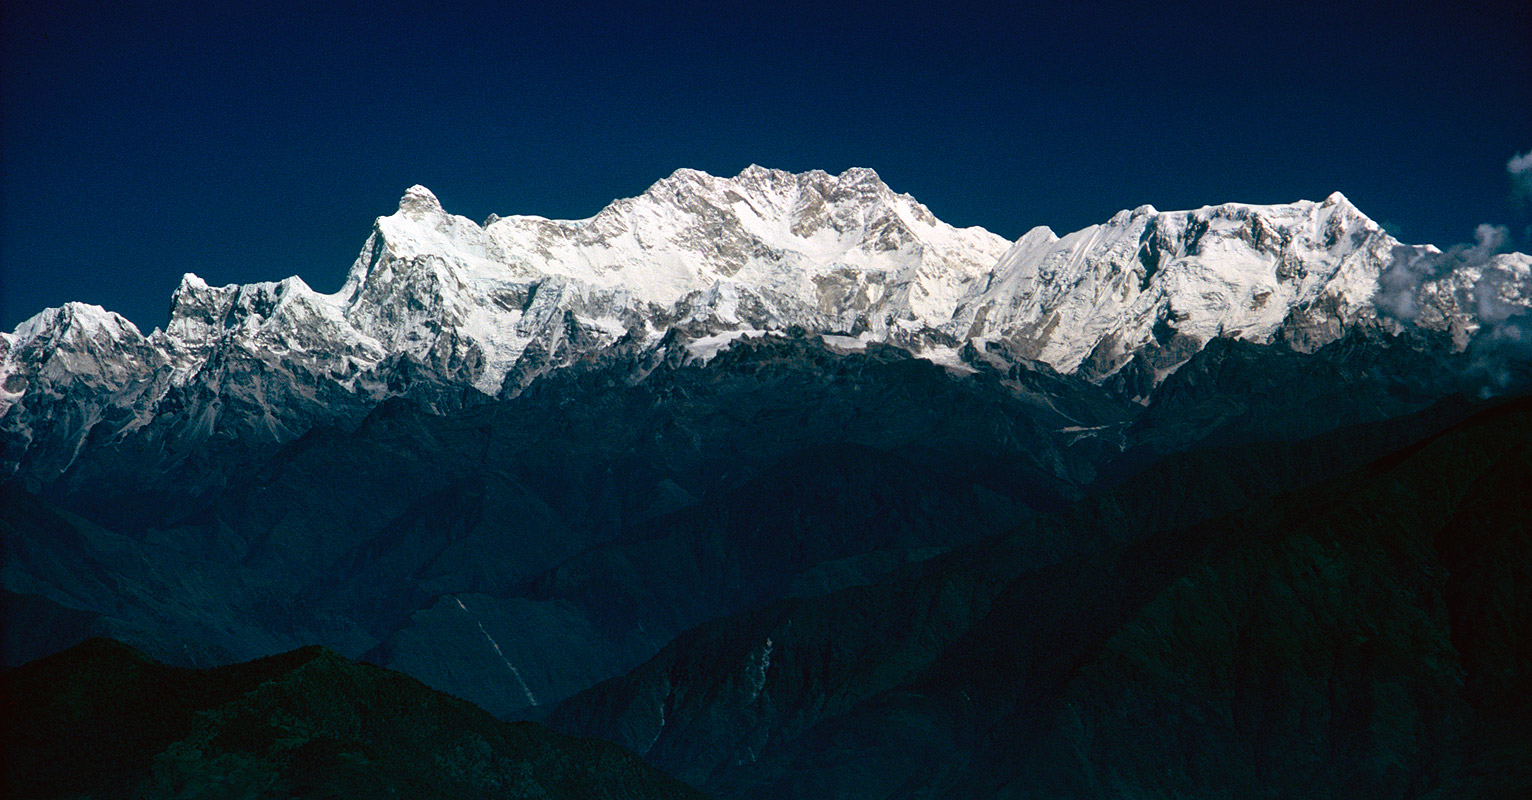 My first view of the Kangchendzonga massif, from the crest of the Milke Danda ridge. In 1988 Rex Munro and I made a 40 day trek across eastern Nepal, starting at the airstrip at Tumlingtar. After Makalu base camp we headed east via Chainpur and the Milke Danda to Taplejung. This picture was taken from the Milke Danda near Chauki.Canon A1, 135mm, Kodachrome